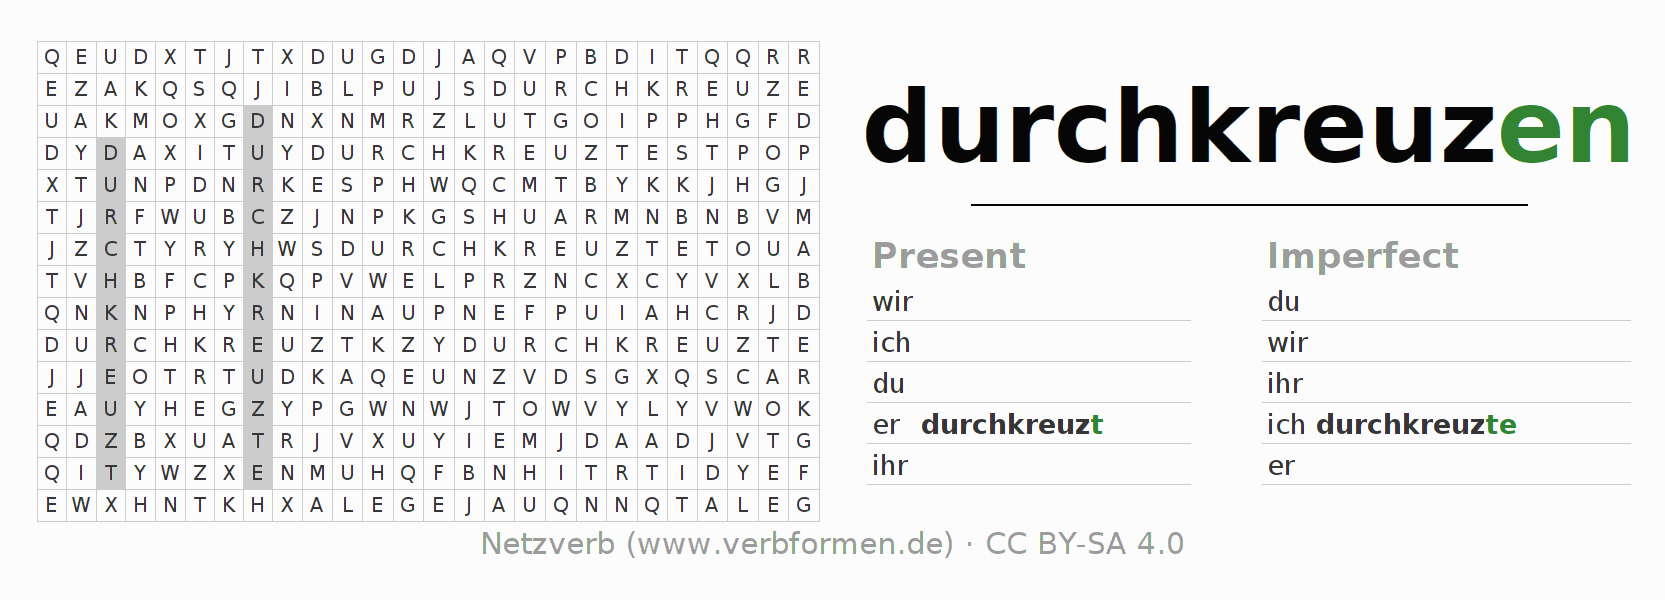 Word search puzzle for the conjugation of the verb durchkreuzen